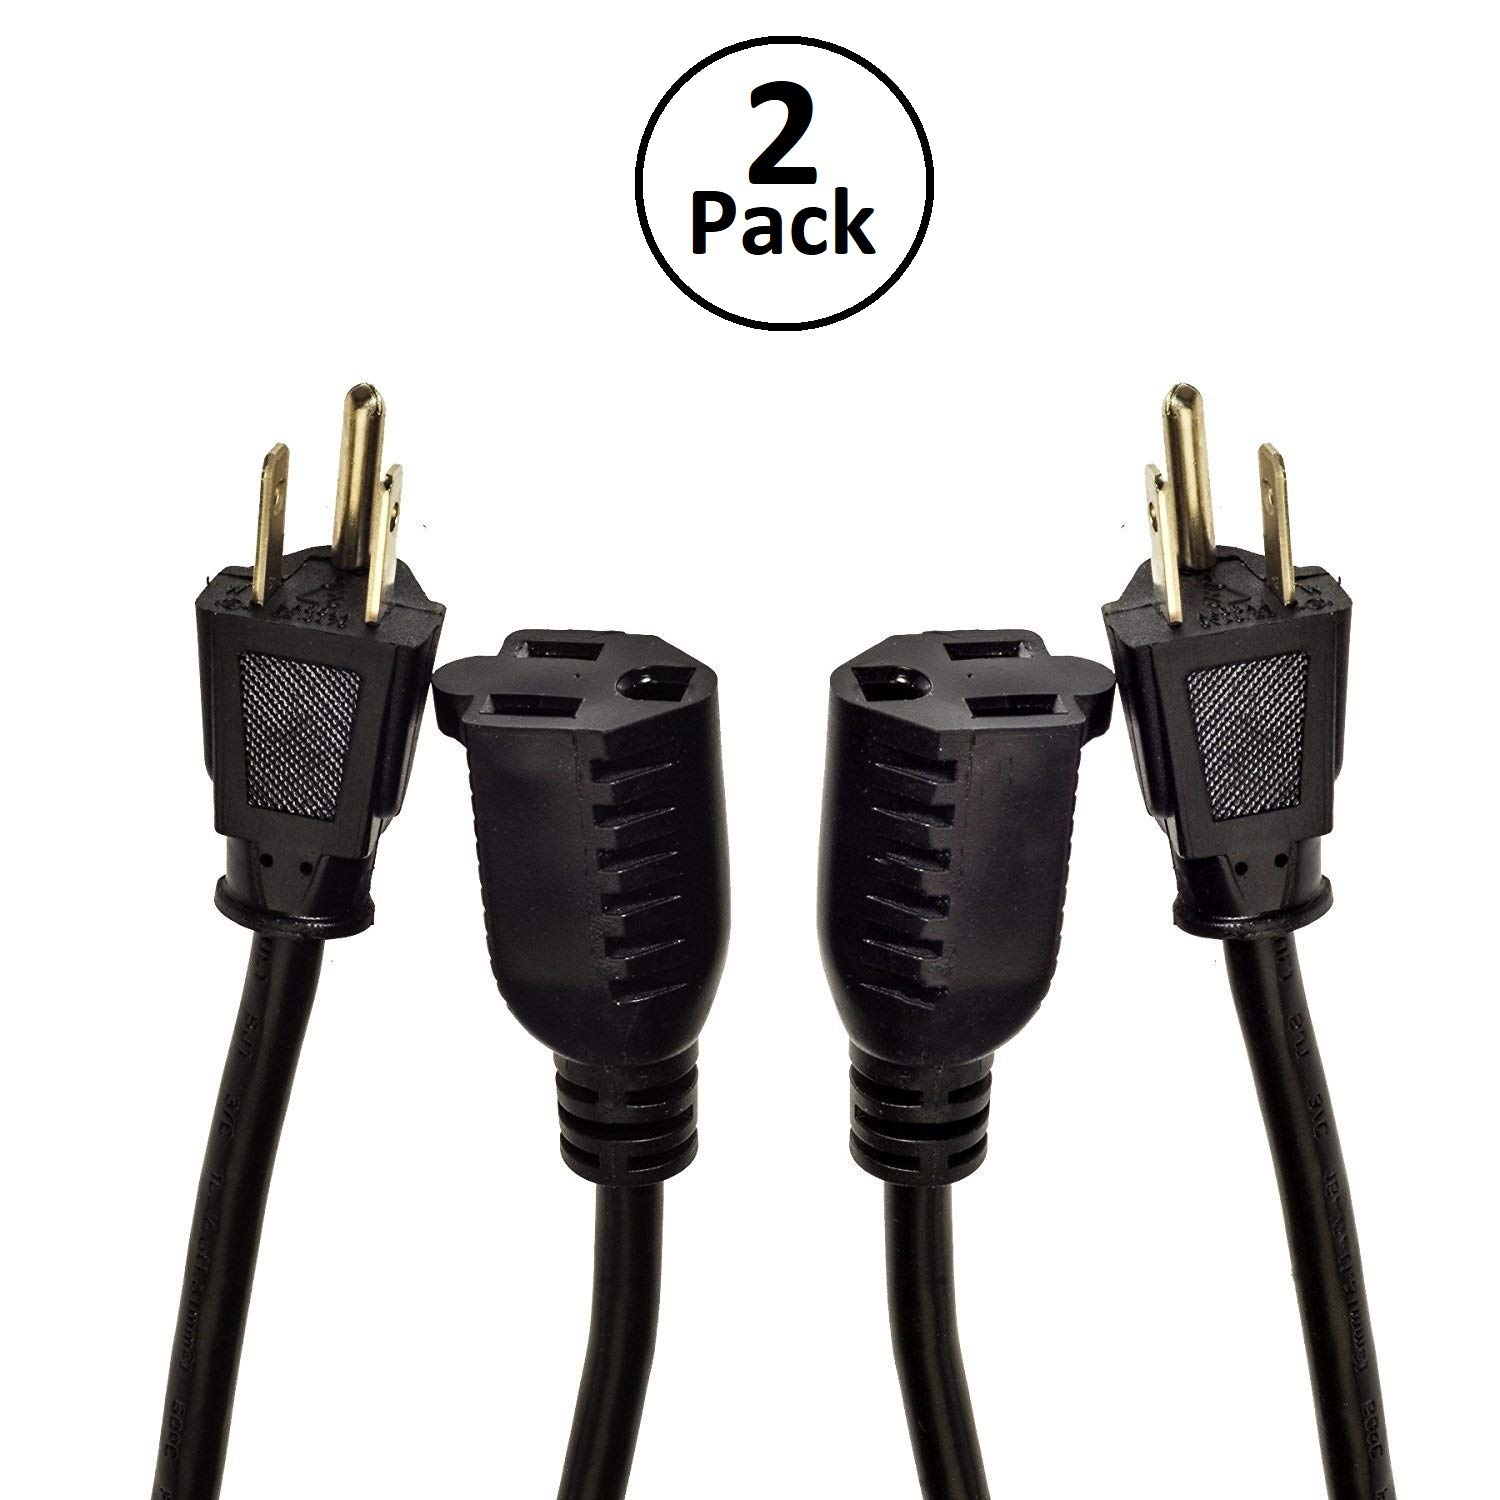 Digital Energy 3prong 25 Foot Long Extension Cords Two Home Power Products Cord Black Sjt 14 Awg Pack 3 Prong Single Outlet Heavy Duty Indoor Outdoor Grounded 13 Amp